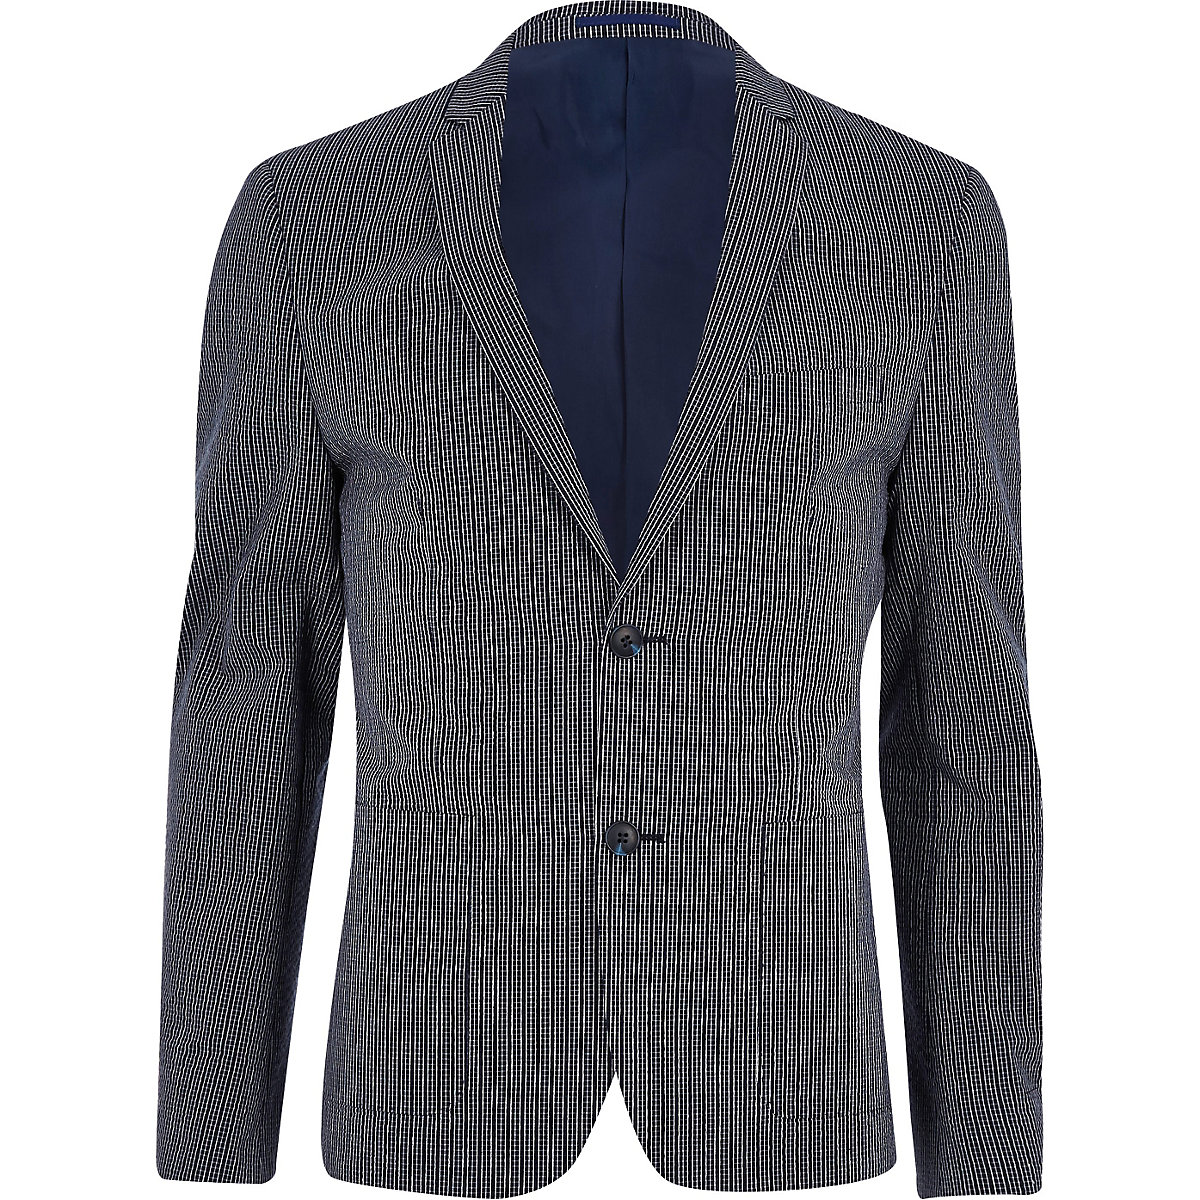 Navy check skinny fit suit jacket